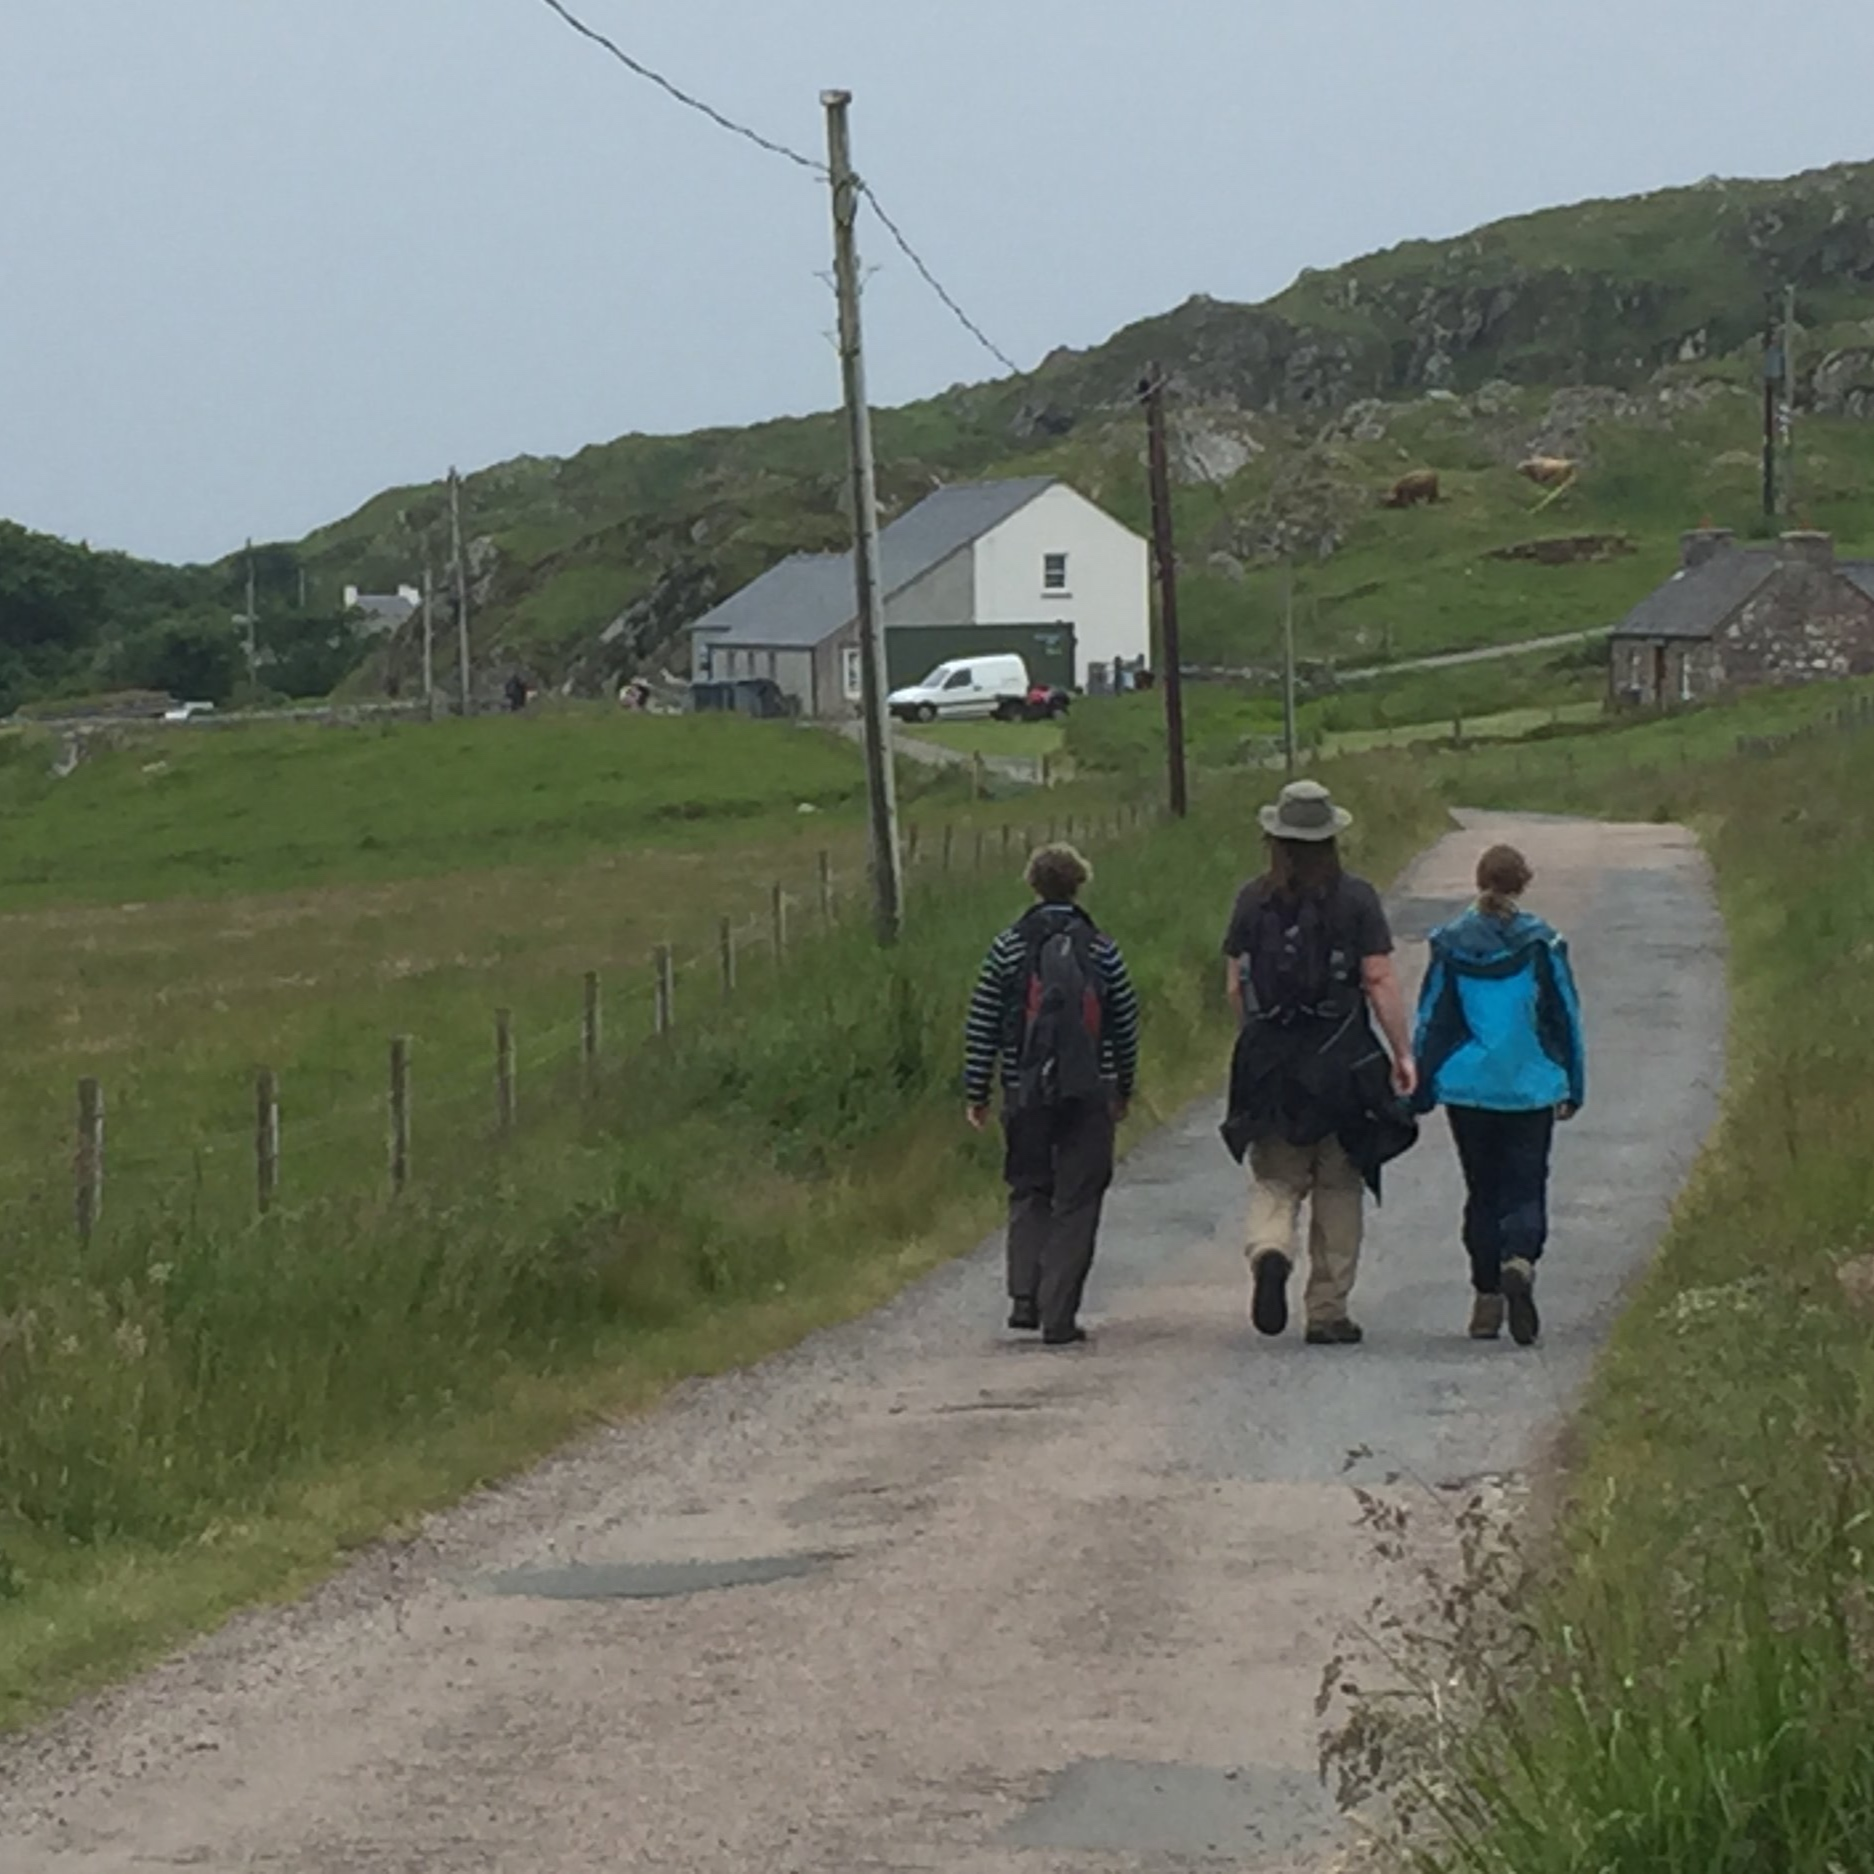 Walking St. Cuthbert's Way - From Scotland to northern England21 - 28 JUNE 2020